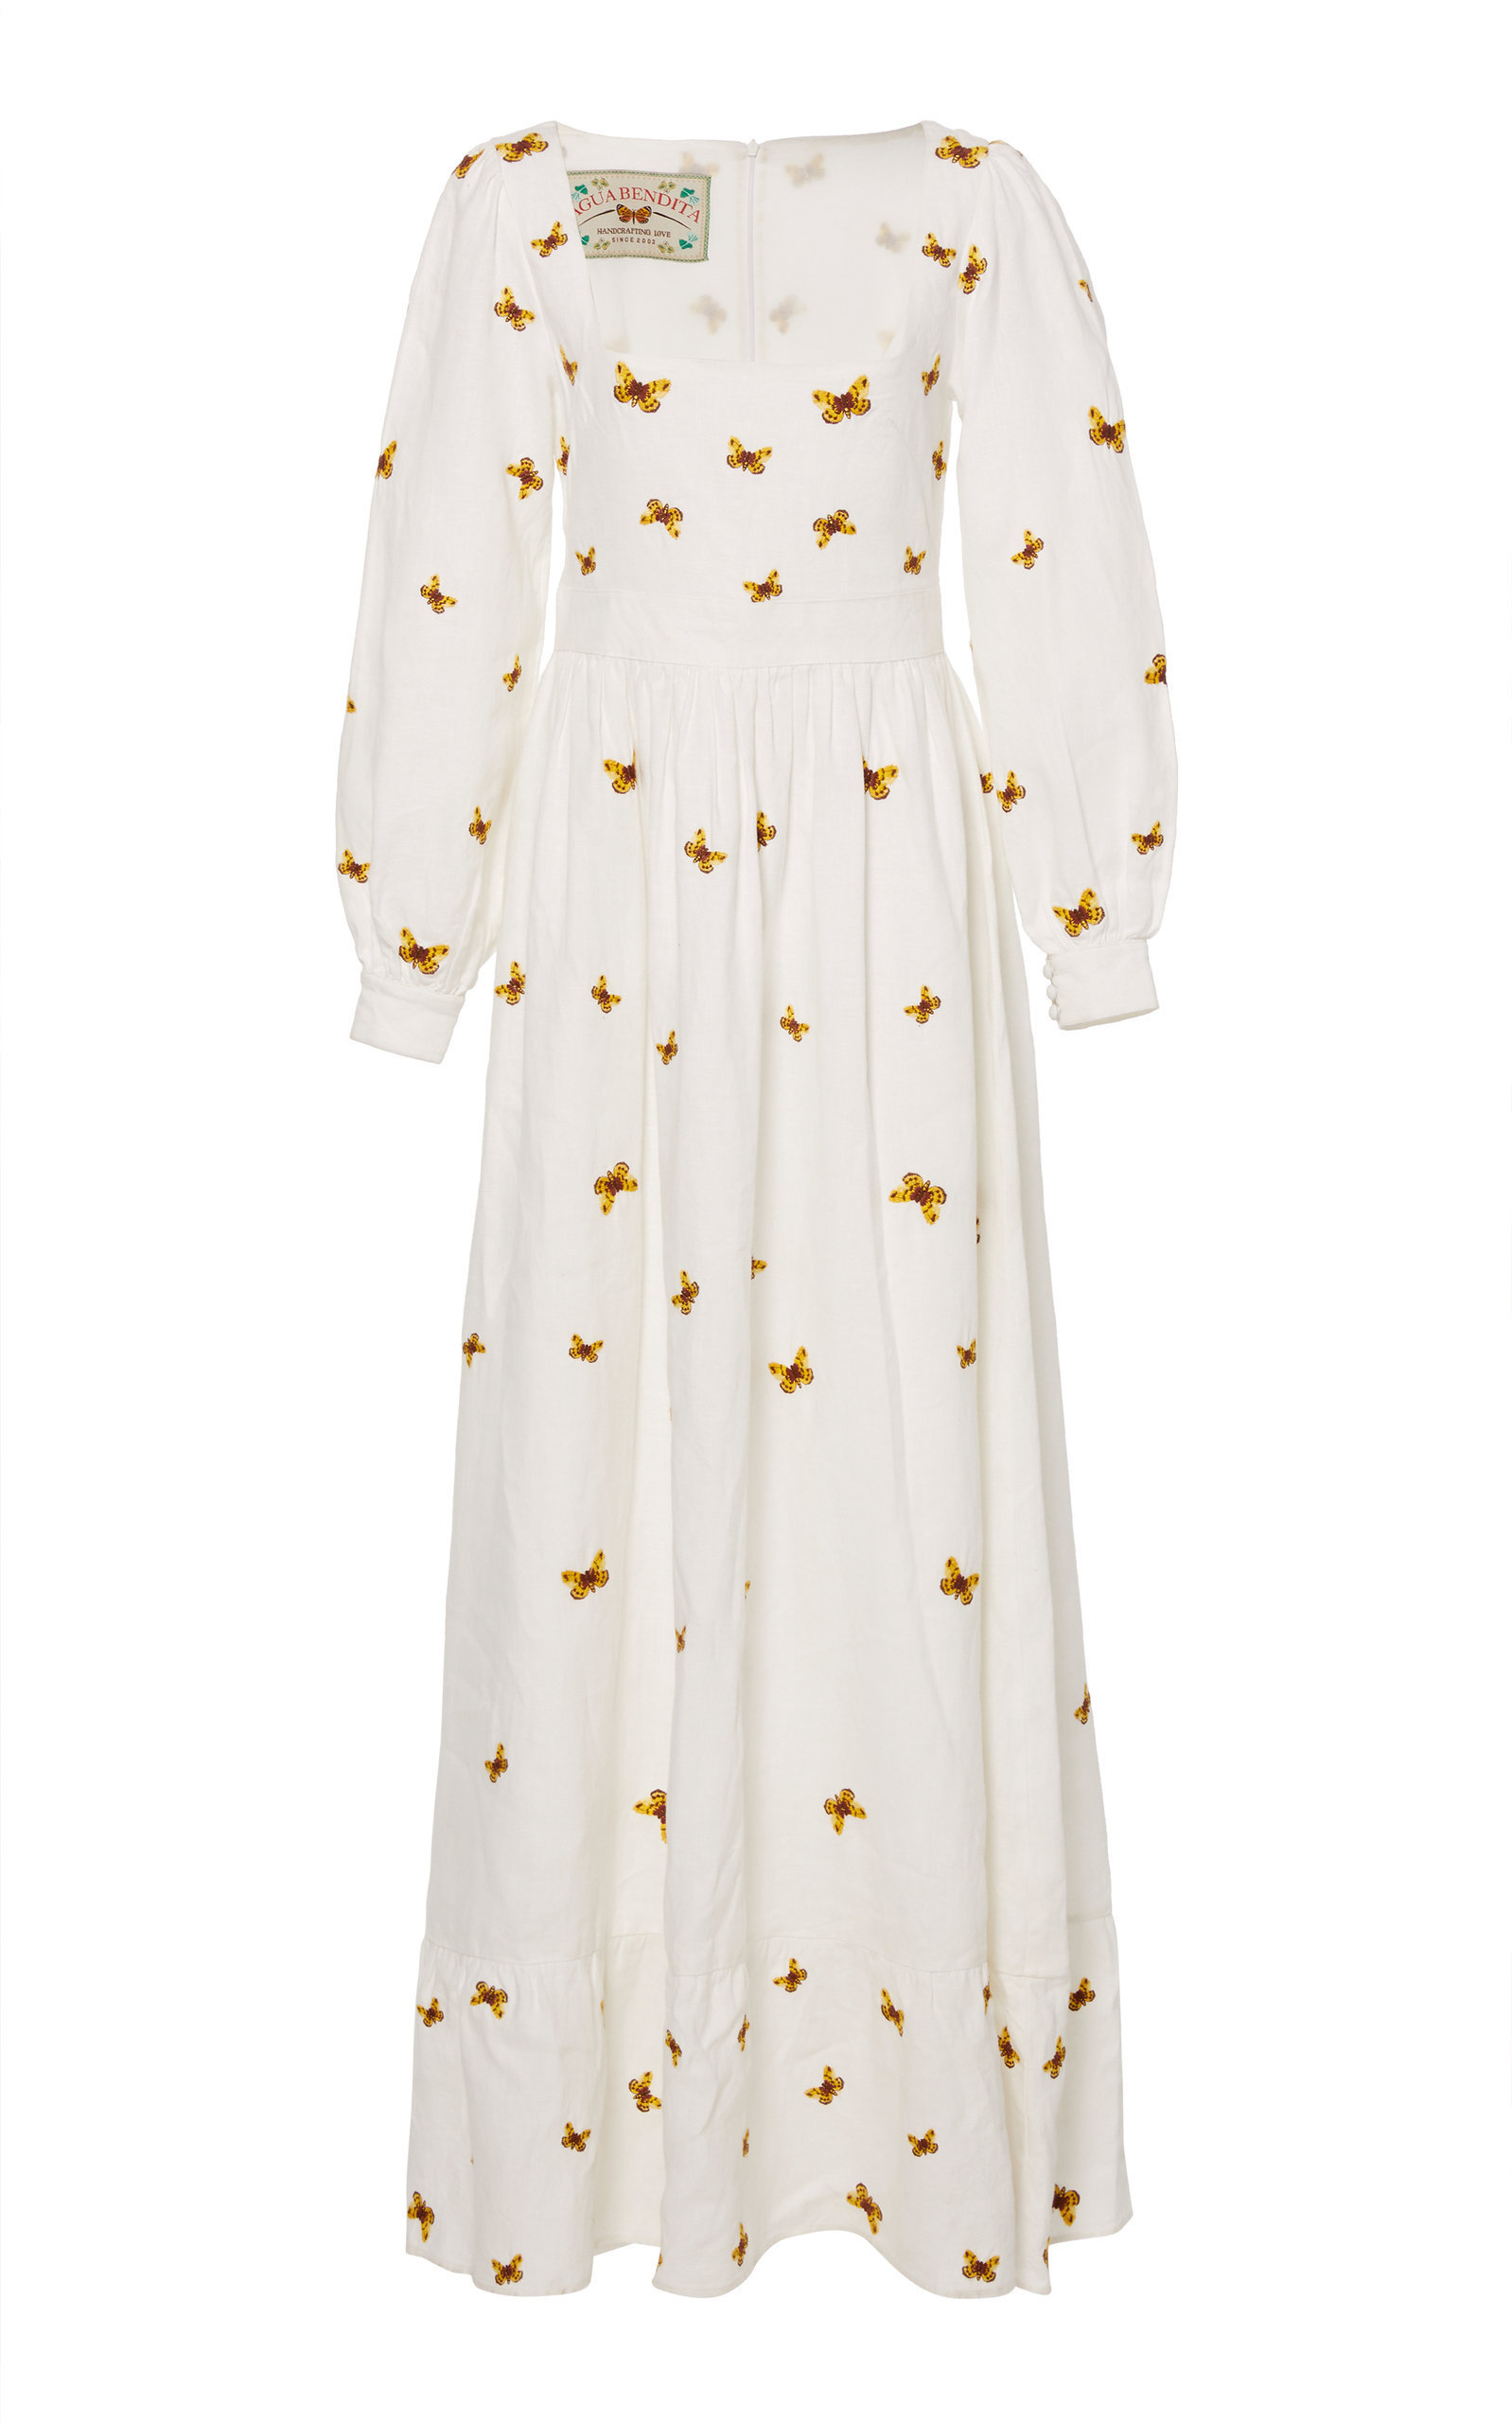 Curuba Embroidered Linen Dress